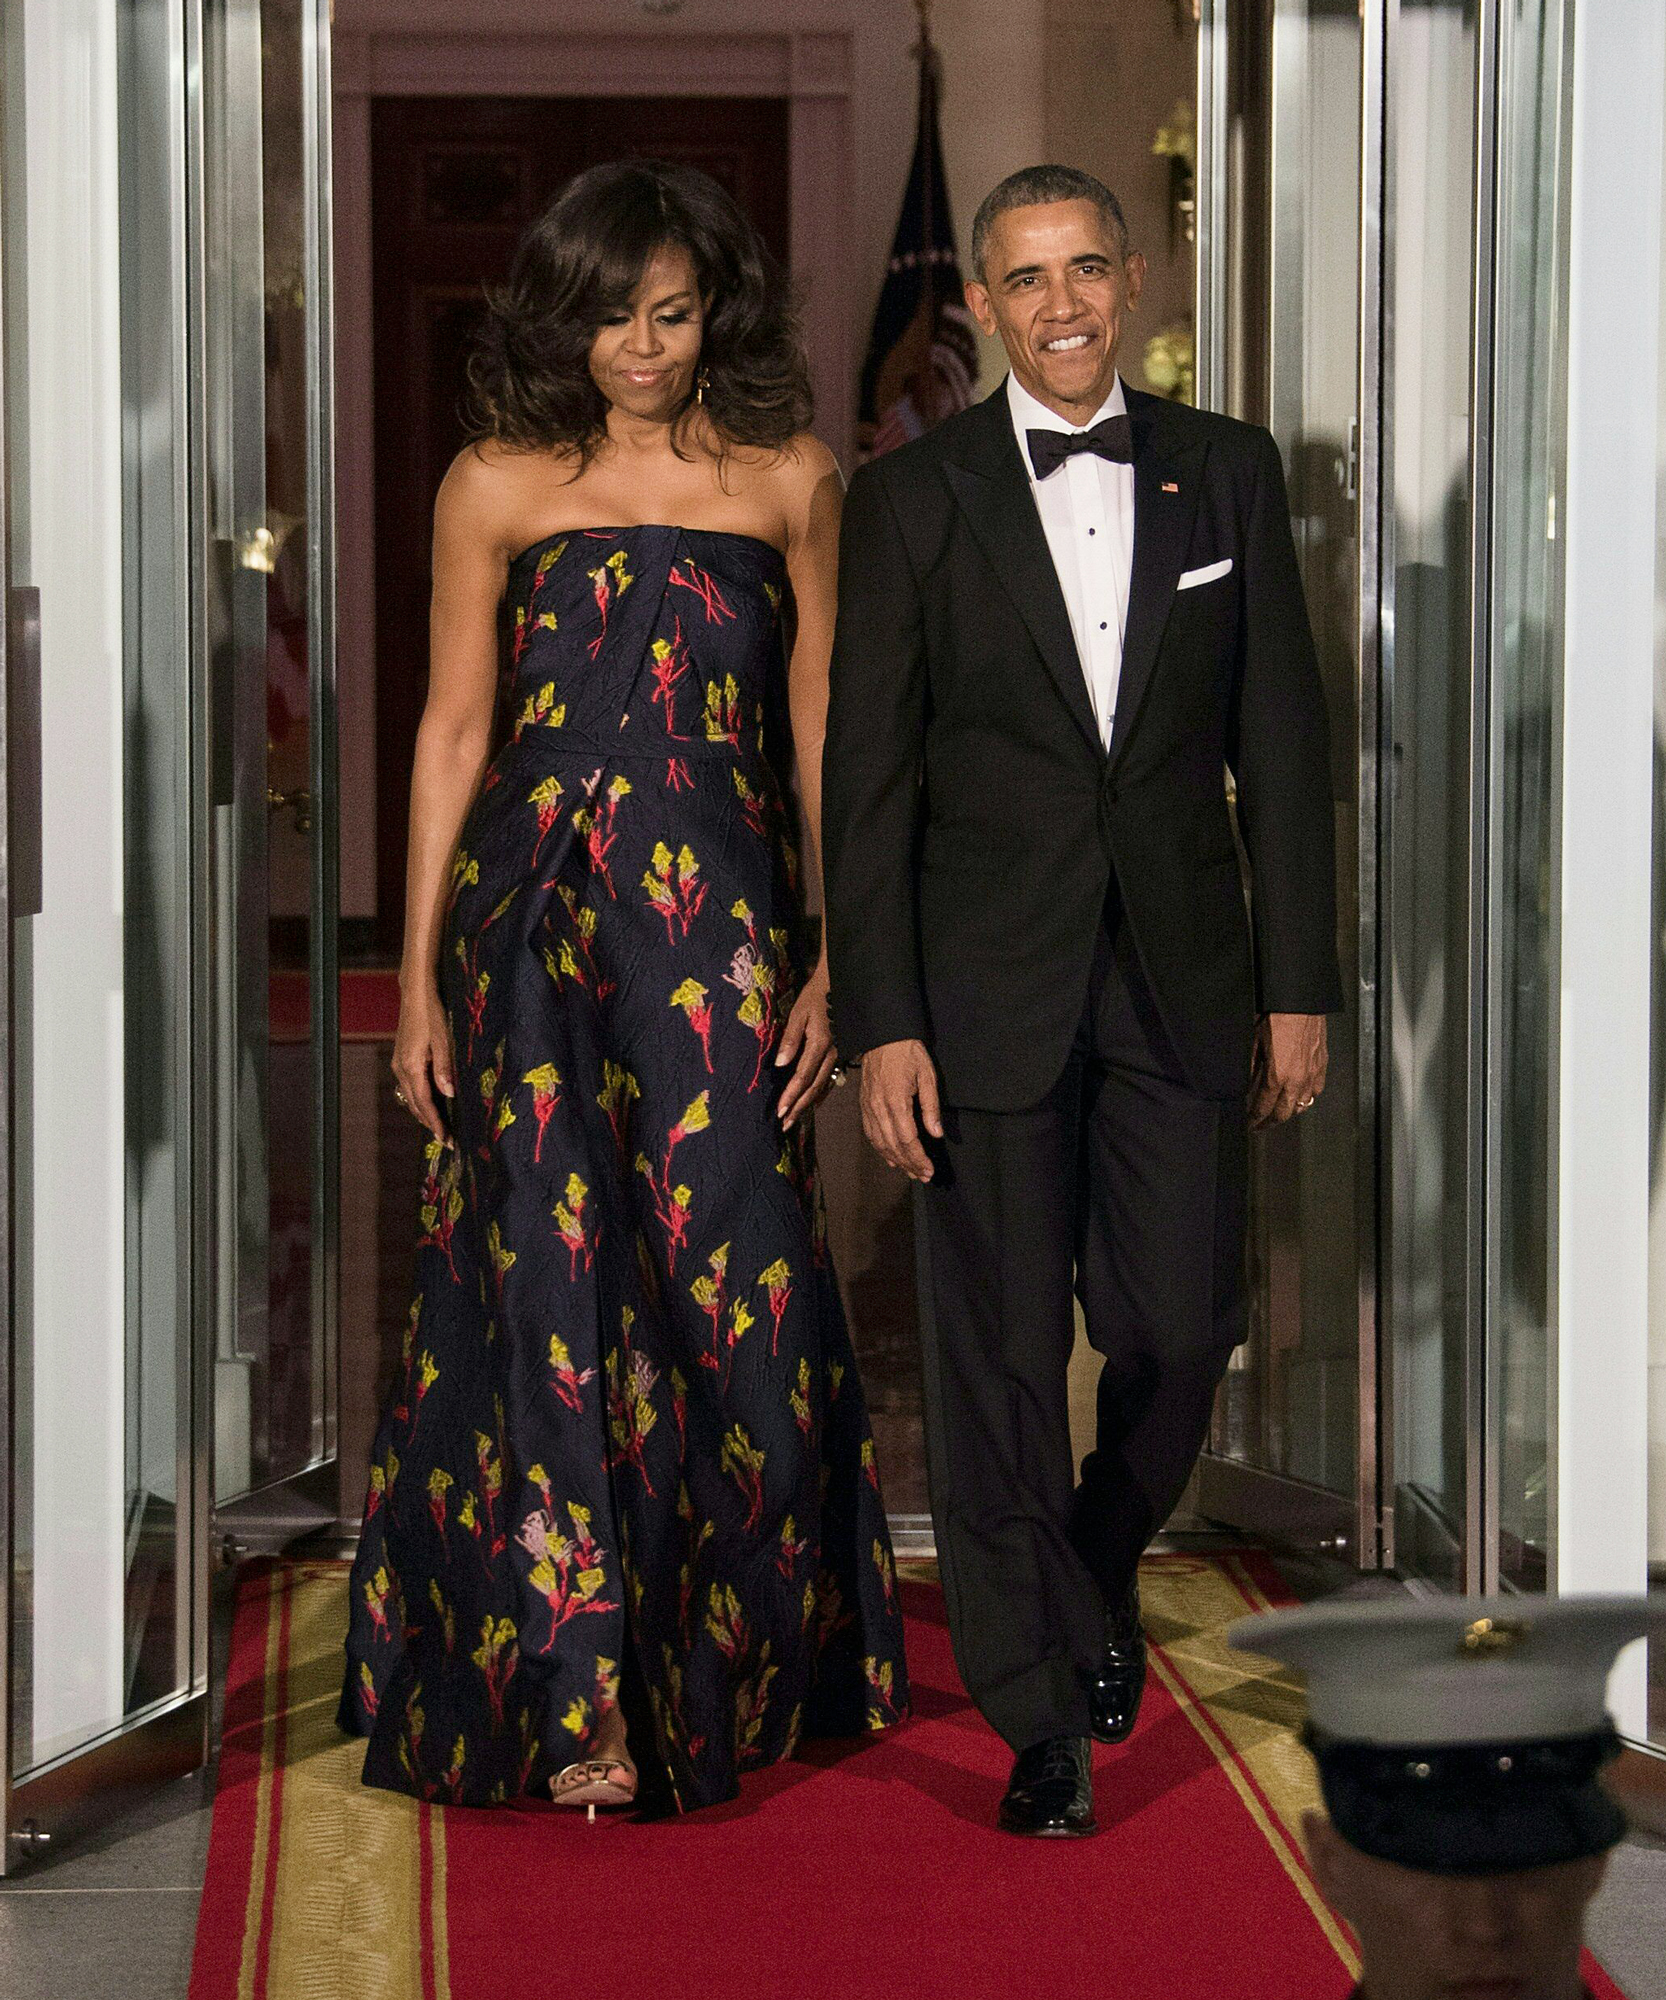 US President Barack Obama and First Lady Michelle Obama walk out to greet Canadian Prime Minister Justin Trudeau and his wife Sophie Gregoire Trudeau for a State Dinner in their honor at the White House in Washington, DC, on March 10, 2016.